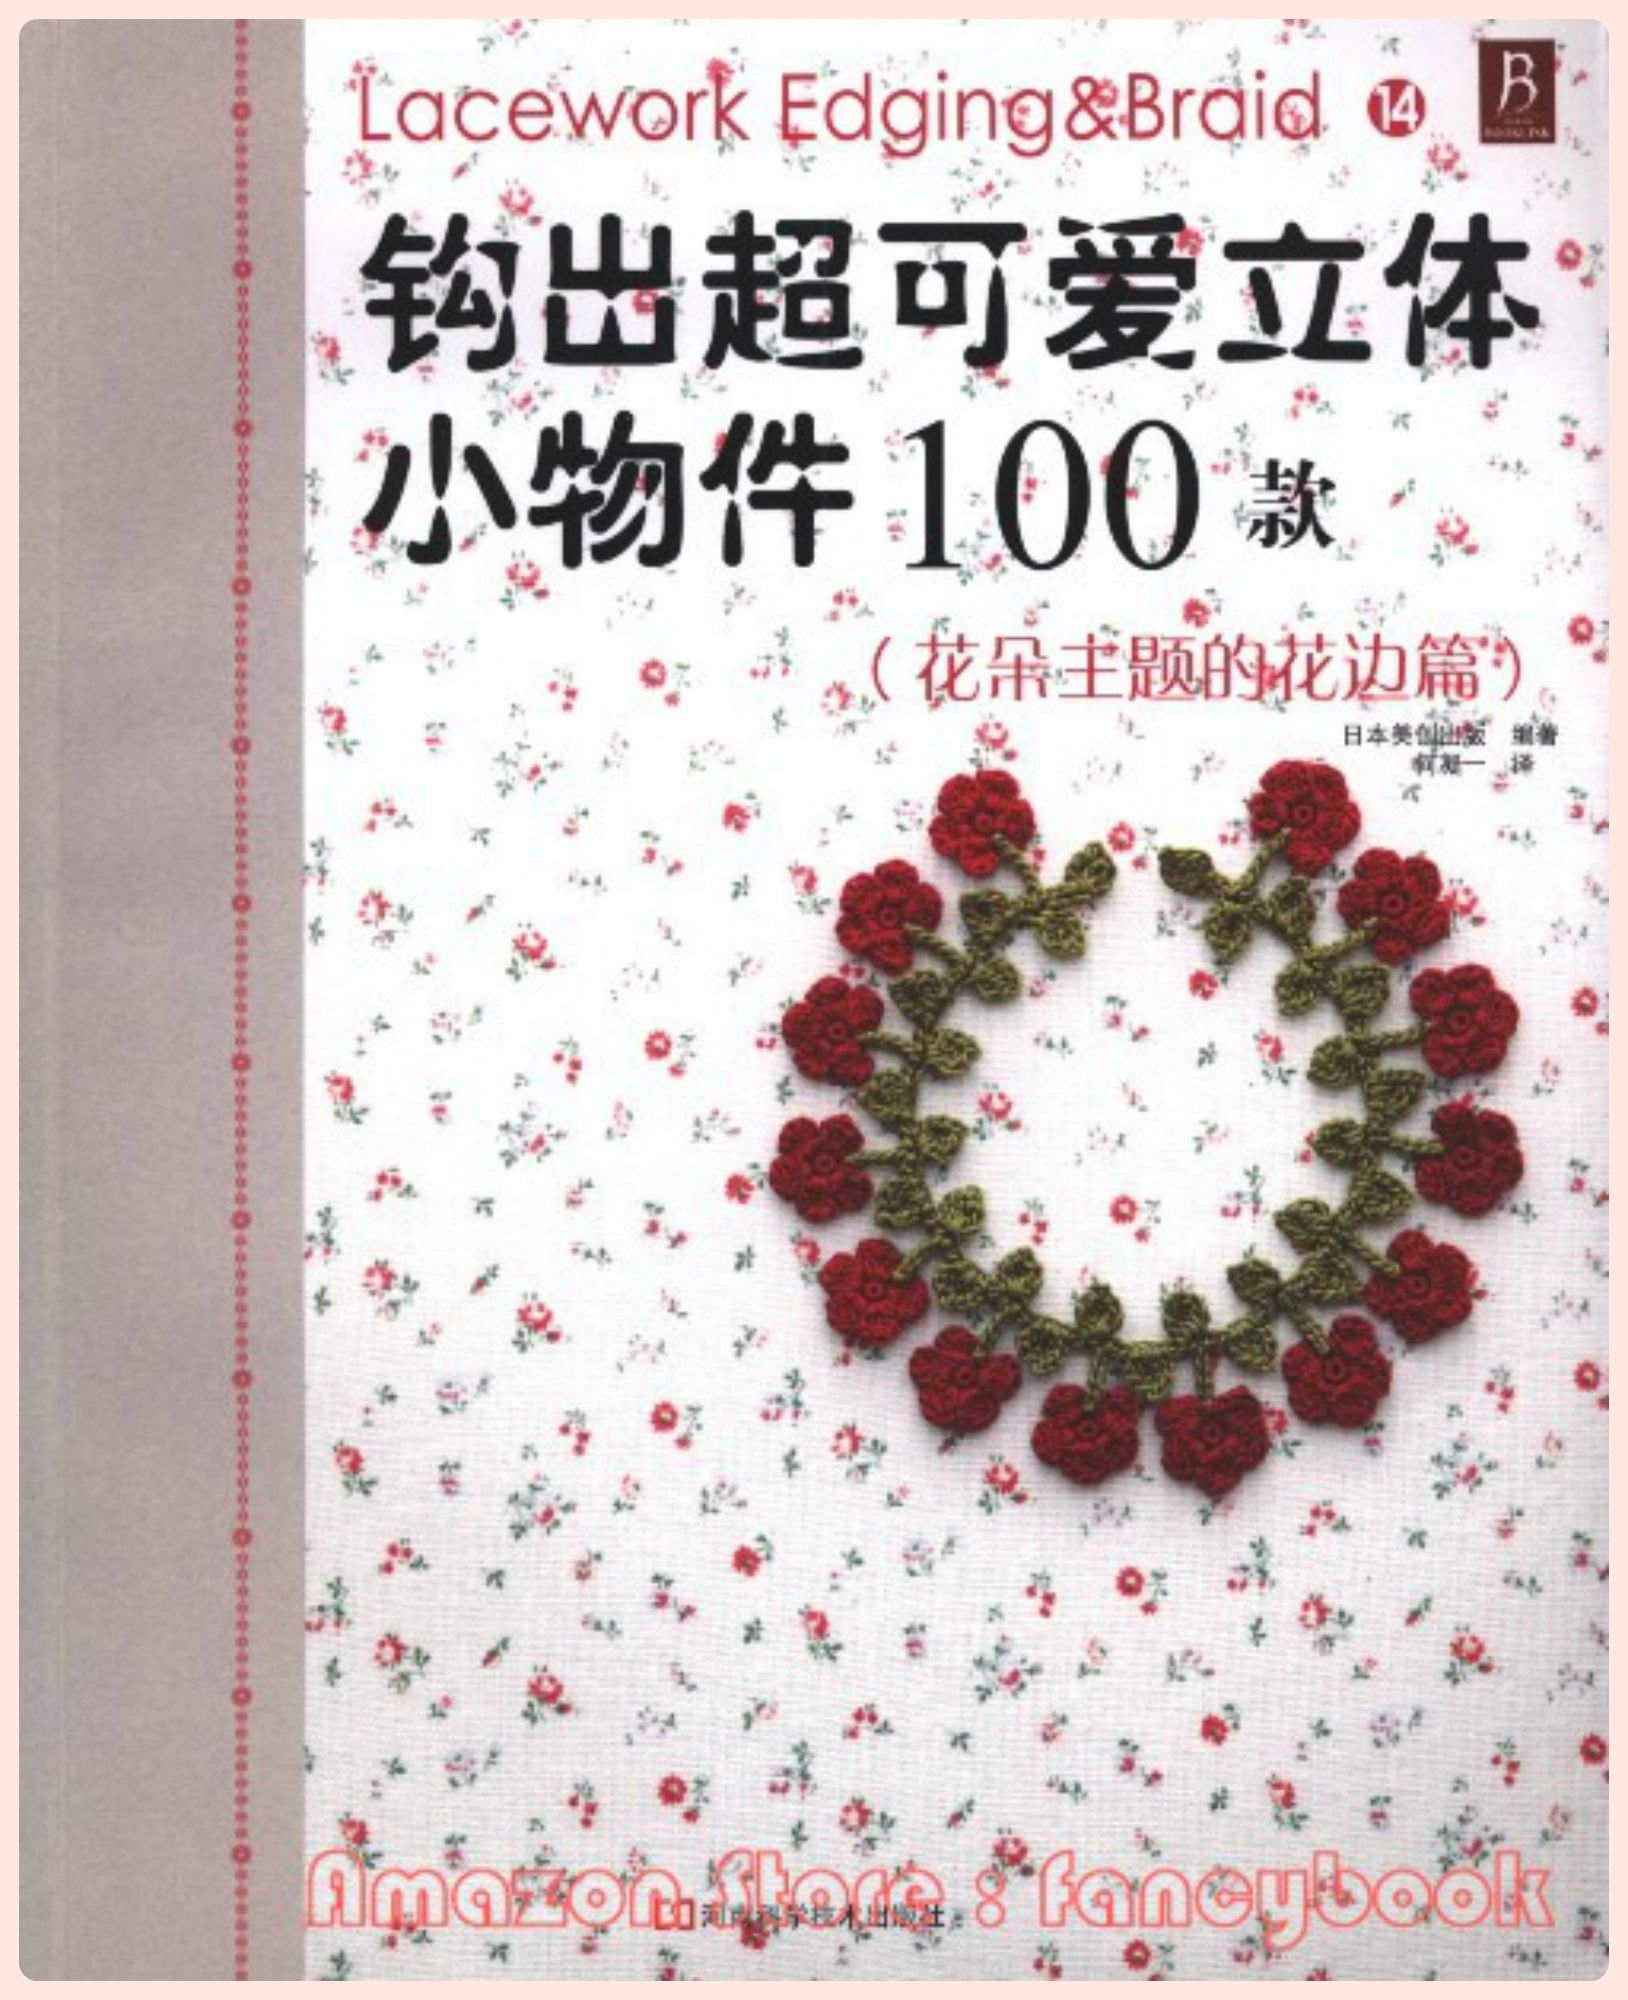 Floral crochet lace edging braid pattern 100 out of print floral crochet lace edging braid pattern 100 out of print japanese crochet pattern book chinese edition eg creates co ltd amazon books bankloansurffo Image collections